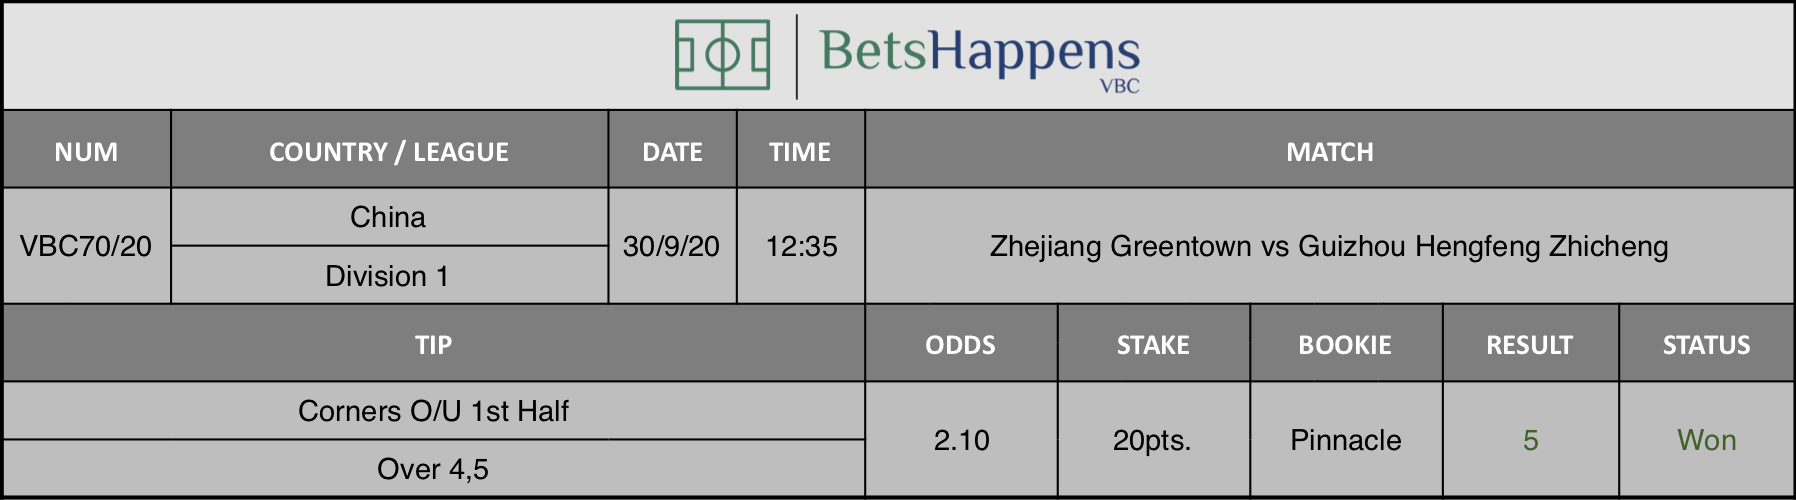 Results of our advice for the Zhejiang Greentown vs Guizhou Hengfeng Zhicheng match in which Corners O / U 1st Half Over 4.5 is recommended.